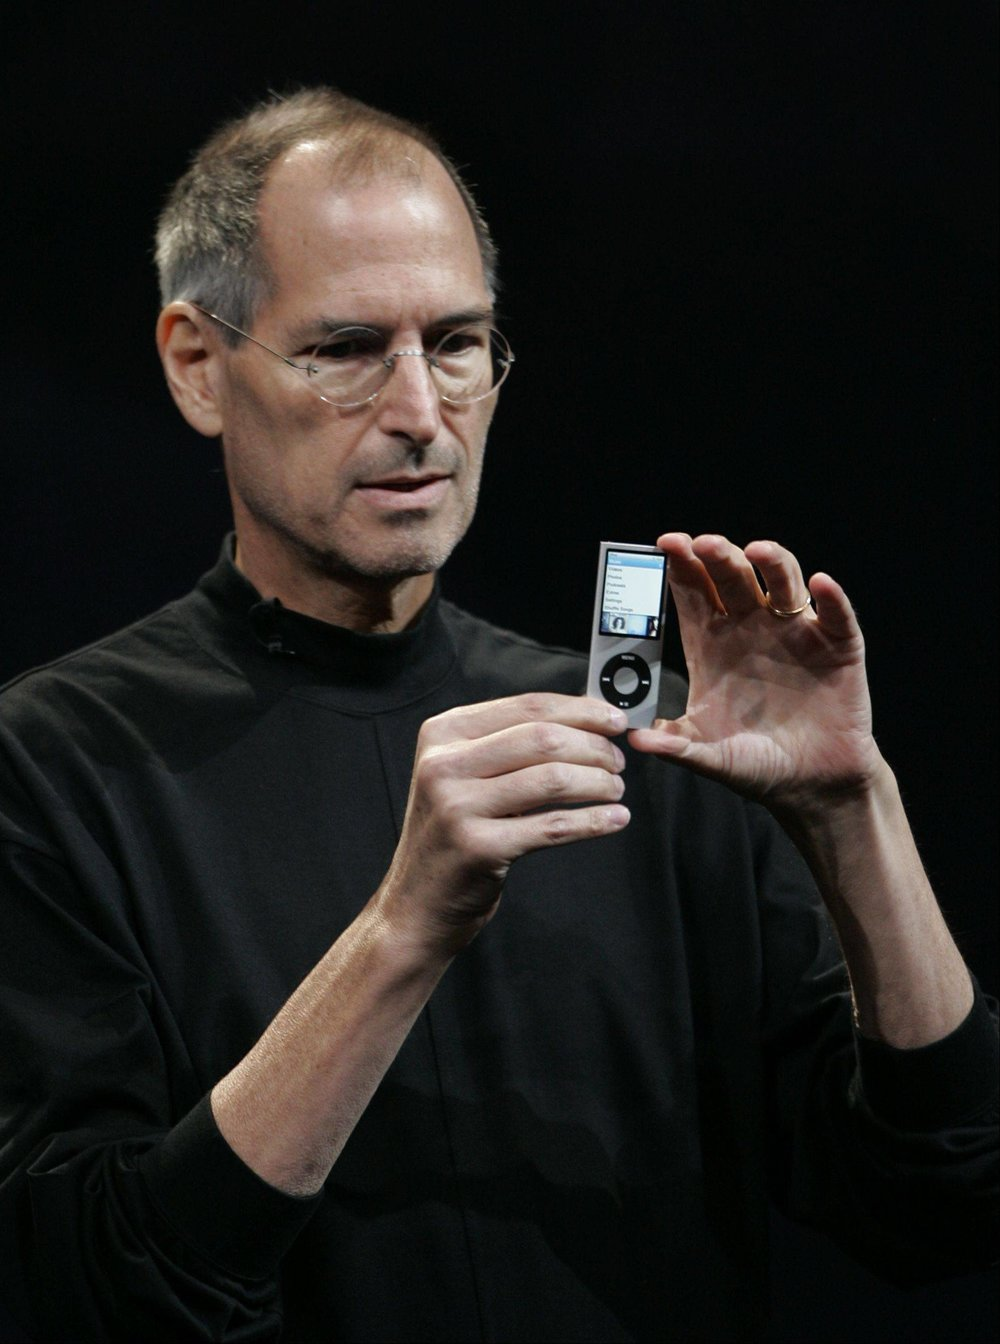 Steve Jobs introduces iPod, Sept 9, 2008. Photo source: The Red List.